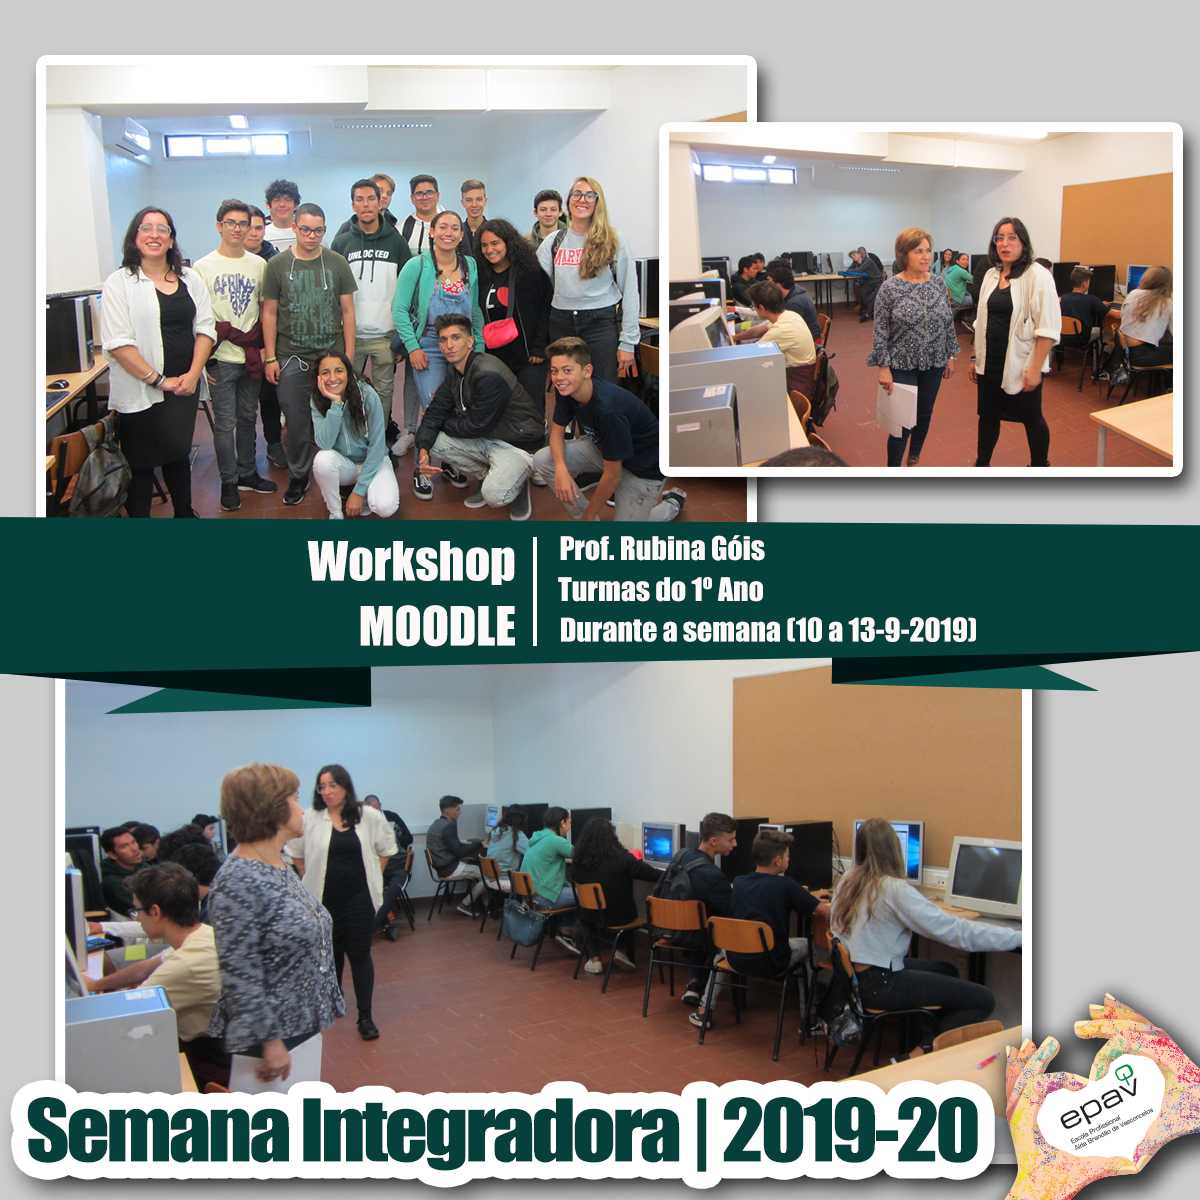 semana_integ_composic_workshop_moodle